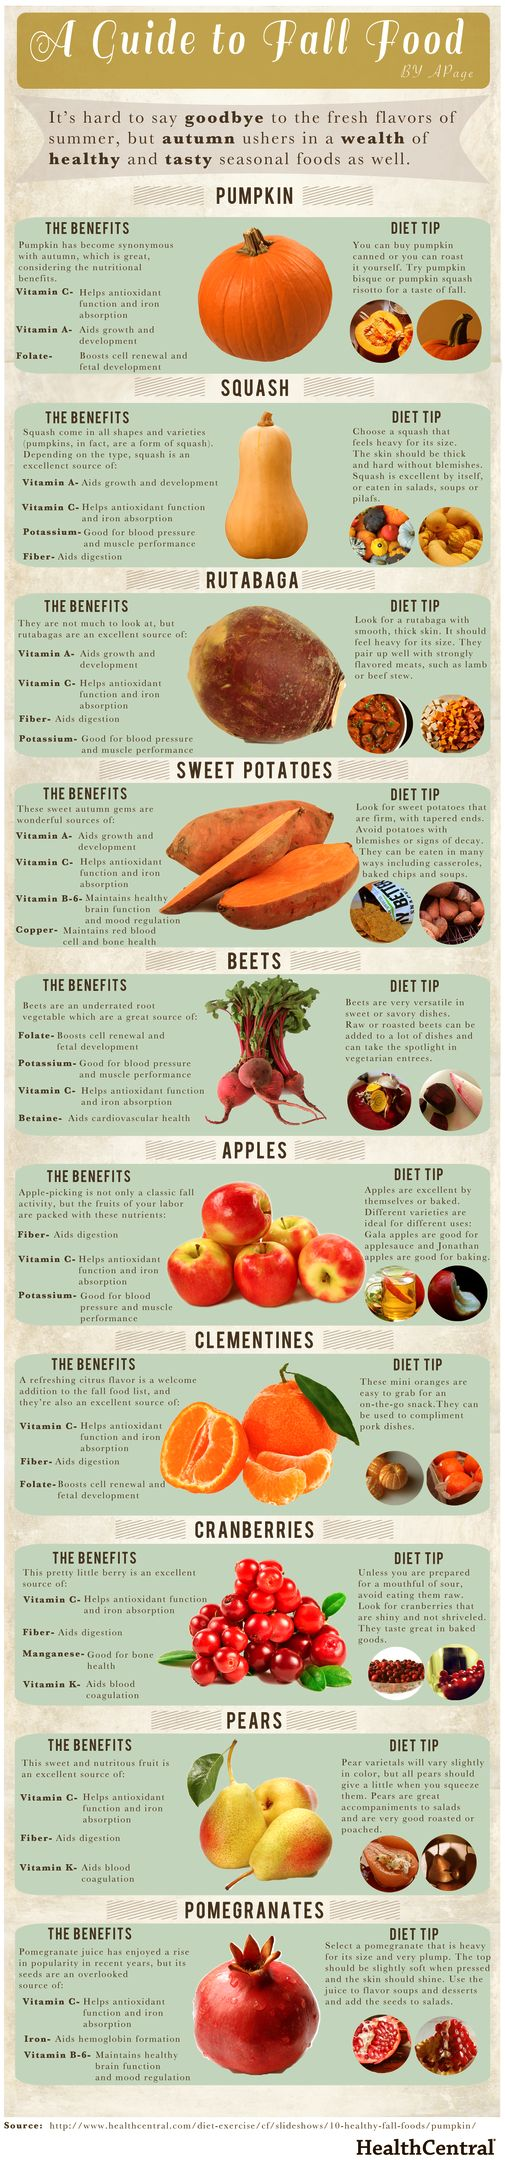 Learn about the health benefits of the most popular fall foods in a tasty infographic from HealthCentral.